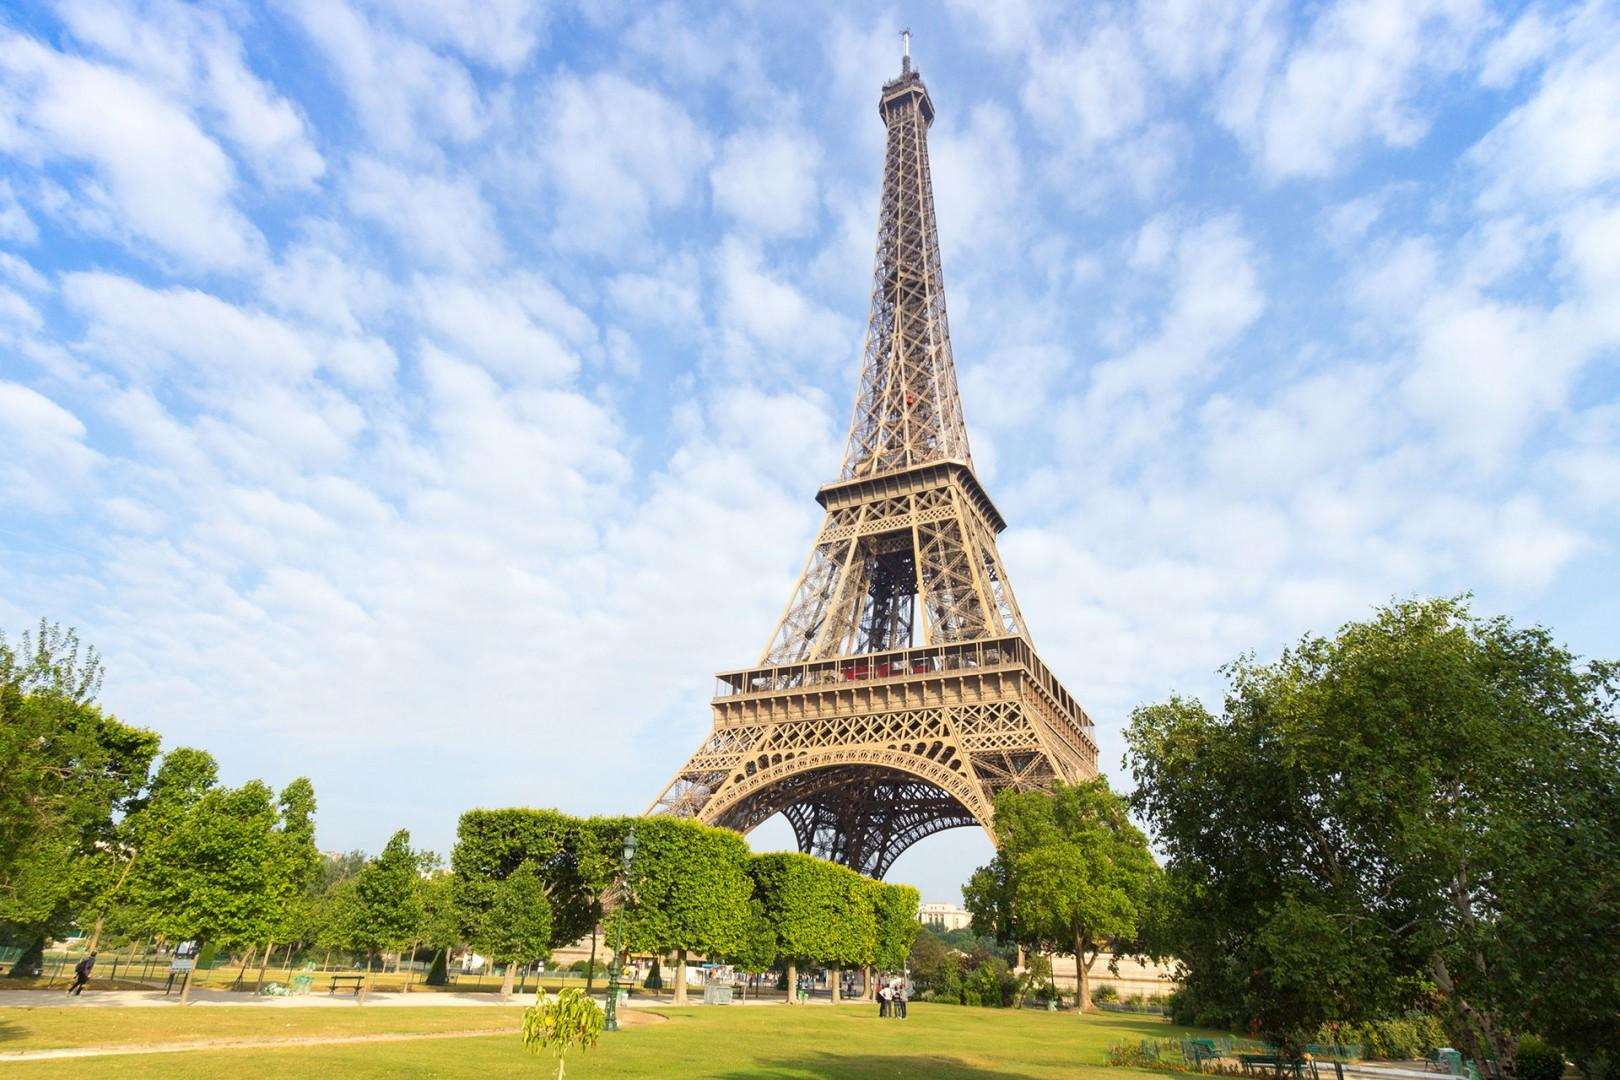 Stroll to the beautiful Champ de Mars gardens to visit the Eiffel Tower.